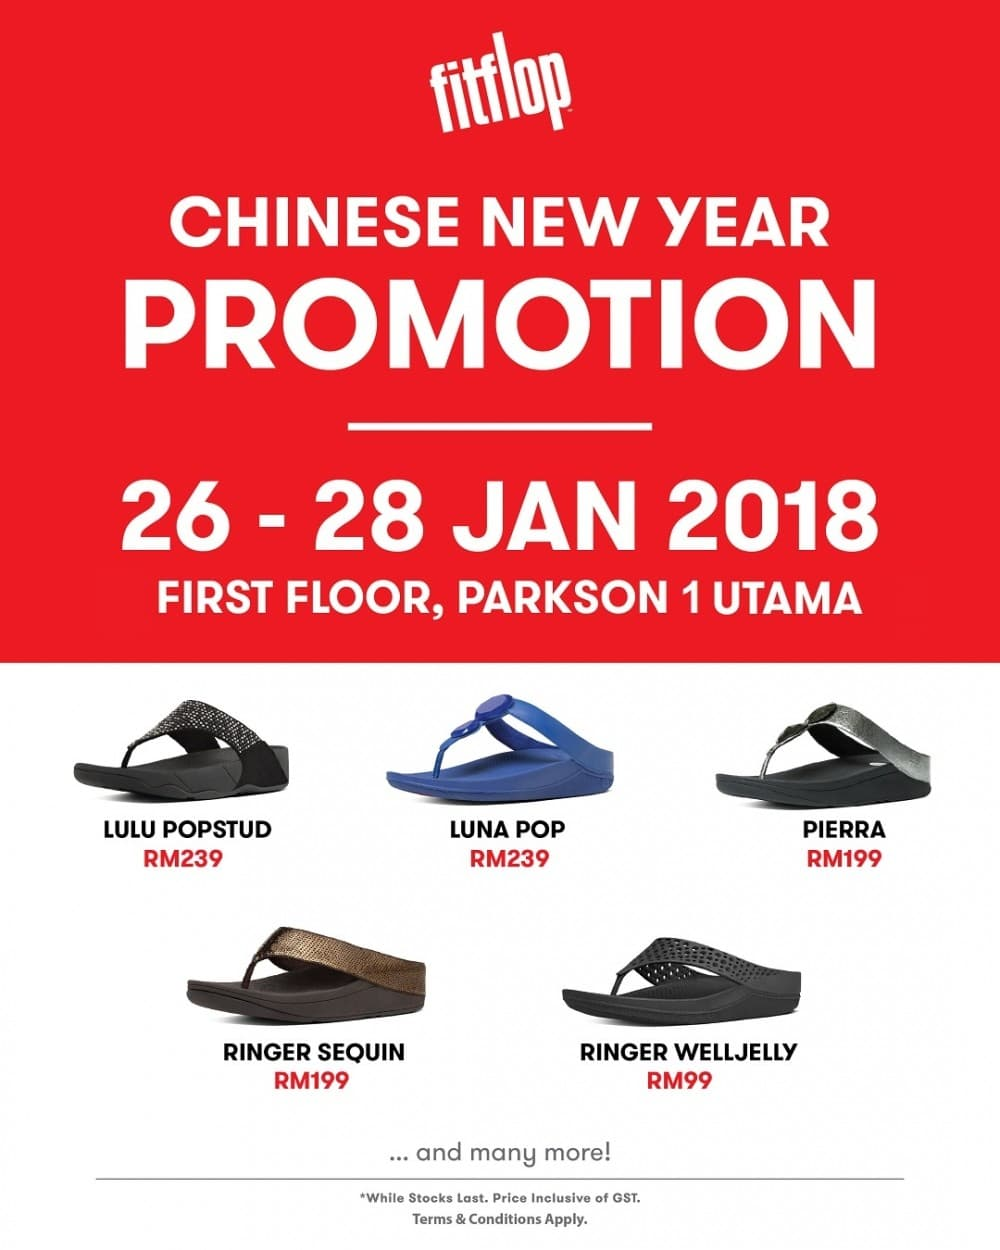 aefc001106b336 FitFlop Chinese New Year Promotion at Parkson 1 Utama